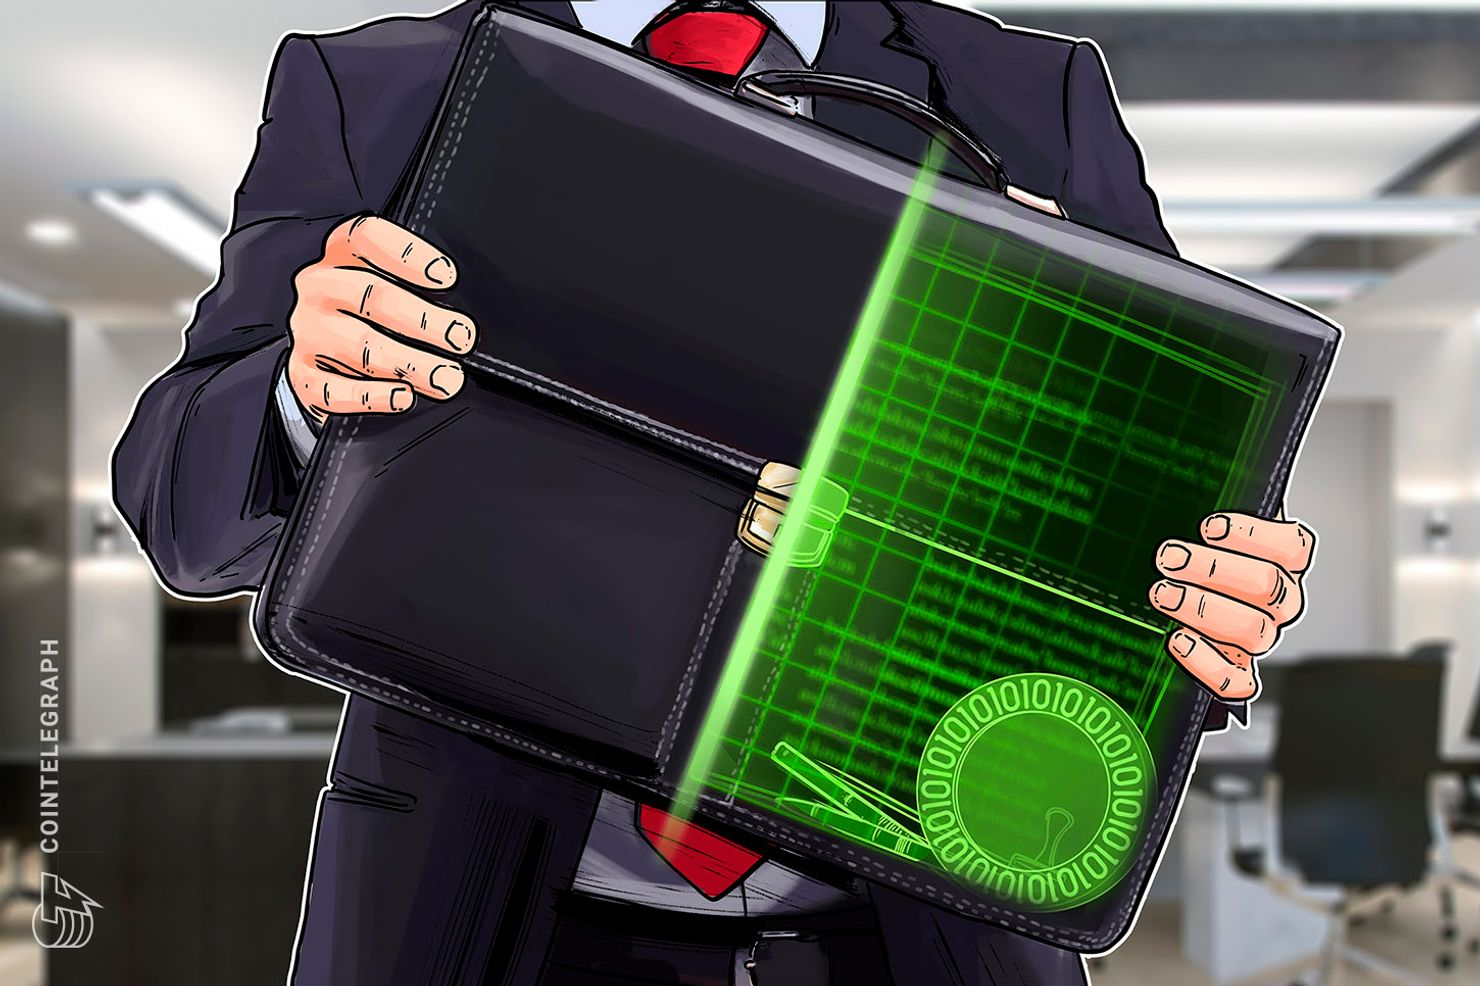 Bloomberg: Amid Bear Market, Crypto Venture Fund Strategy Wins out Over Hedge Fund Model